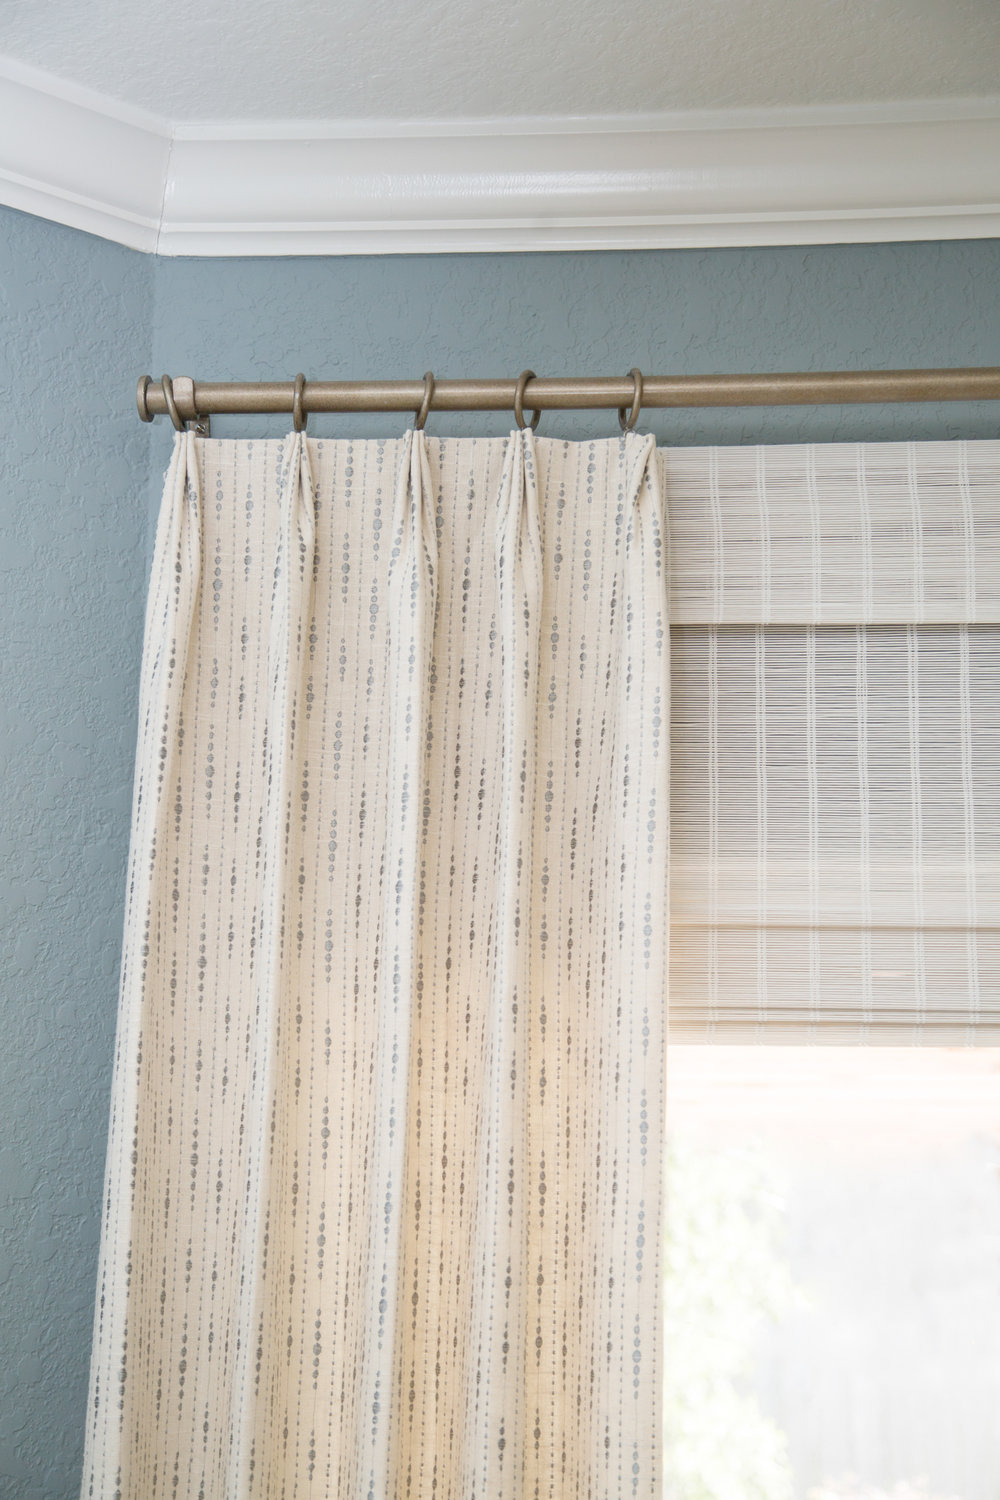 Window treatment with woven wood shades and stationary drapery panels